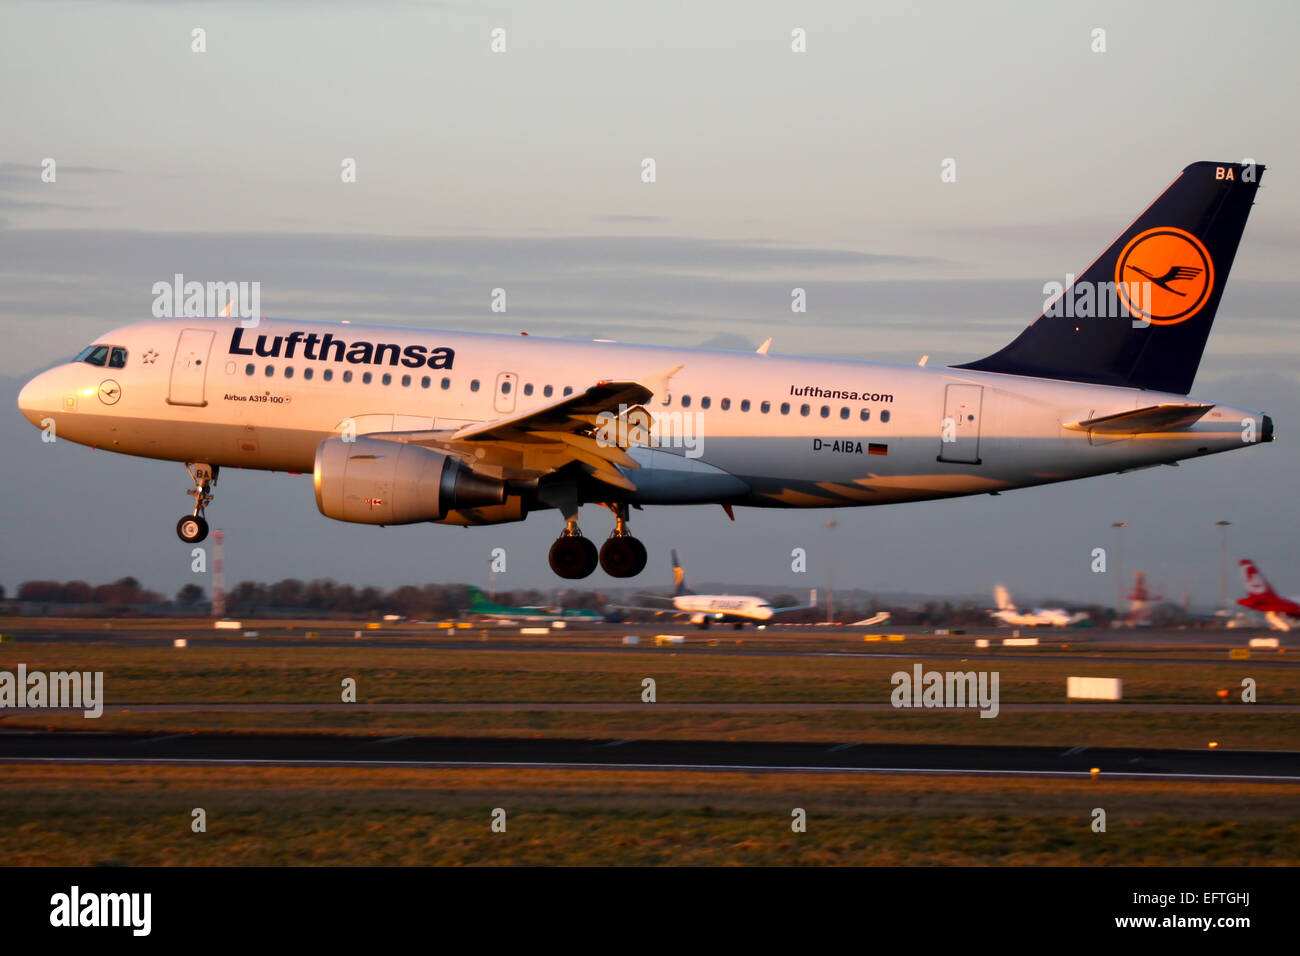 Lufthansa Airbus A319 approaches runway 28 at Dublin airport. - Stock Image